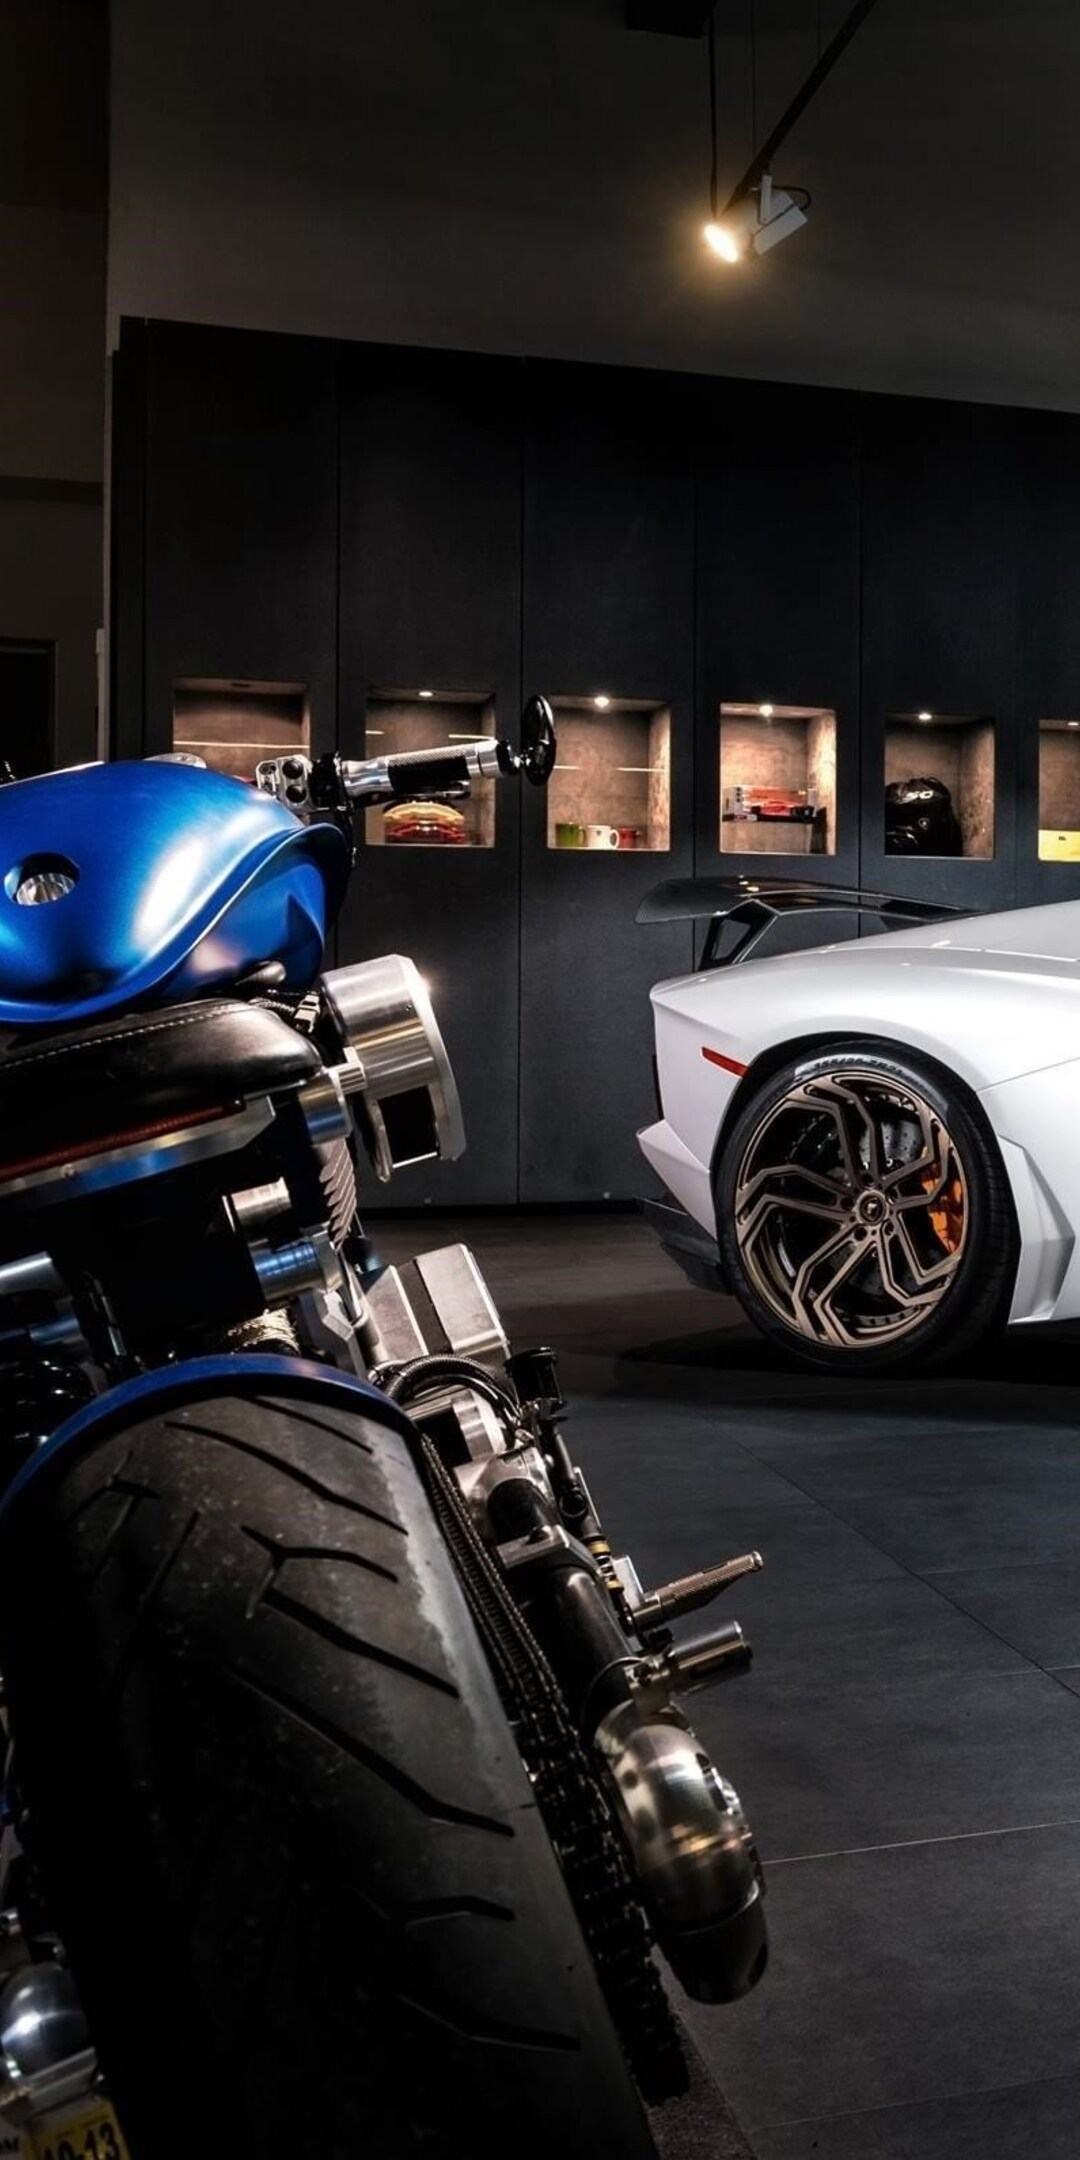 1080x2160 Lamborghini And Bike One Plus 5t Honor 7x Honor View 10 Lg